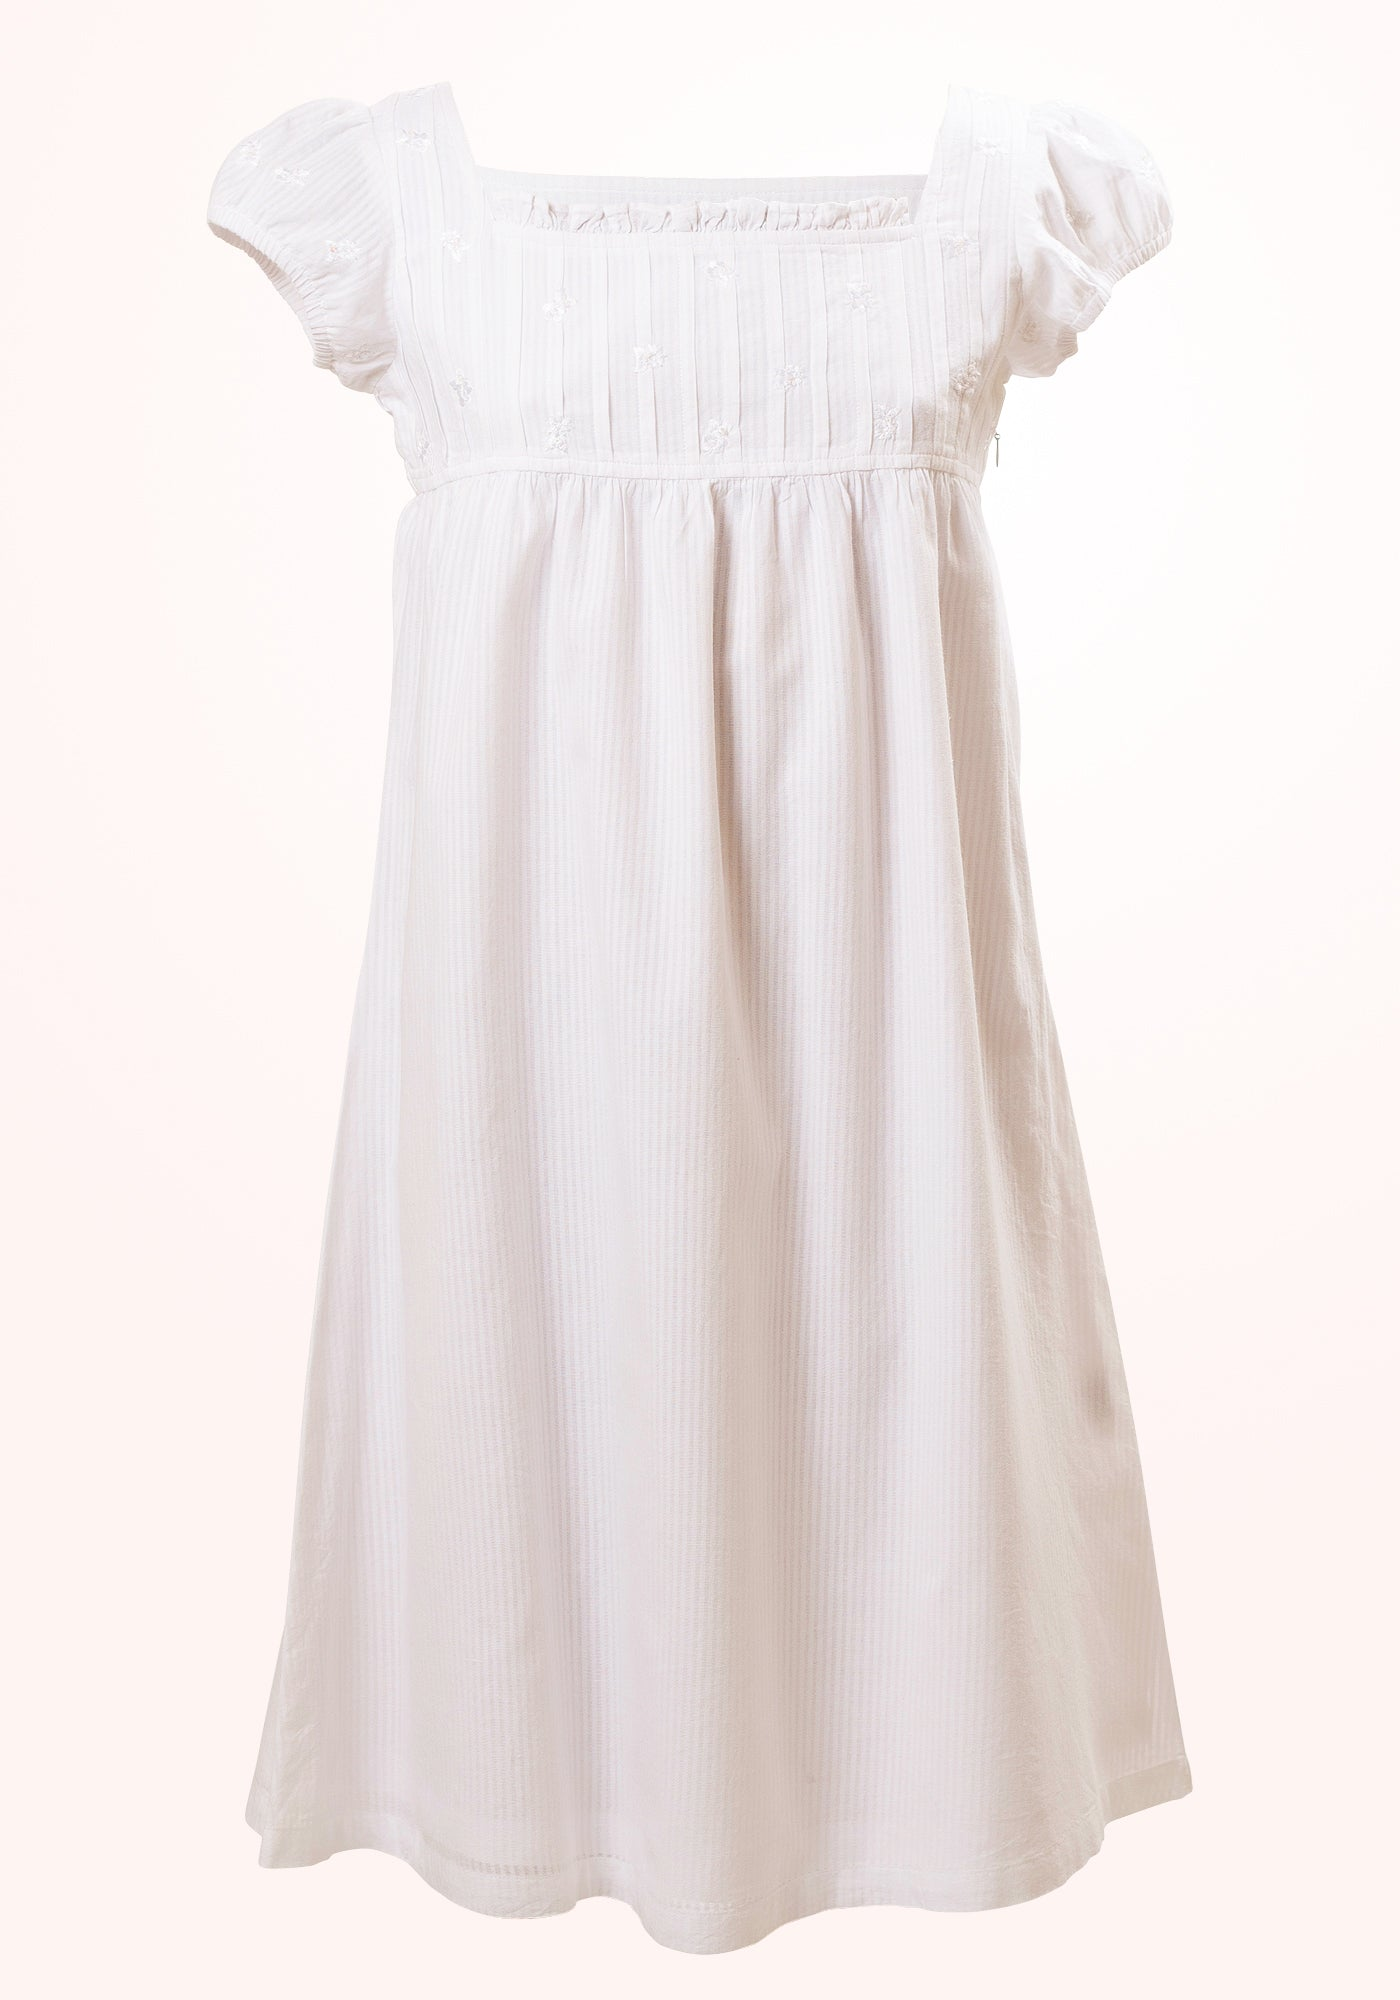 Jane Girls Short Dress in White Voile stripe - MINC ecofashion